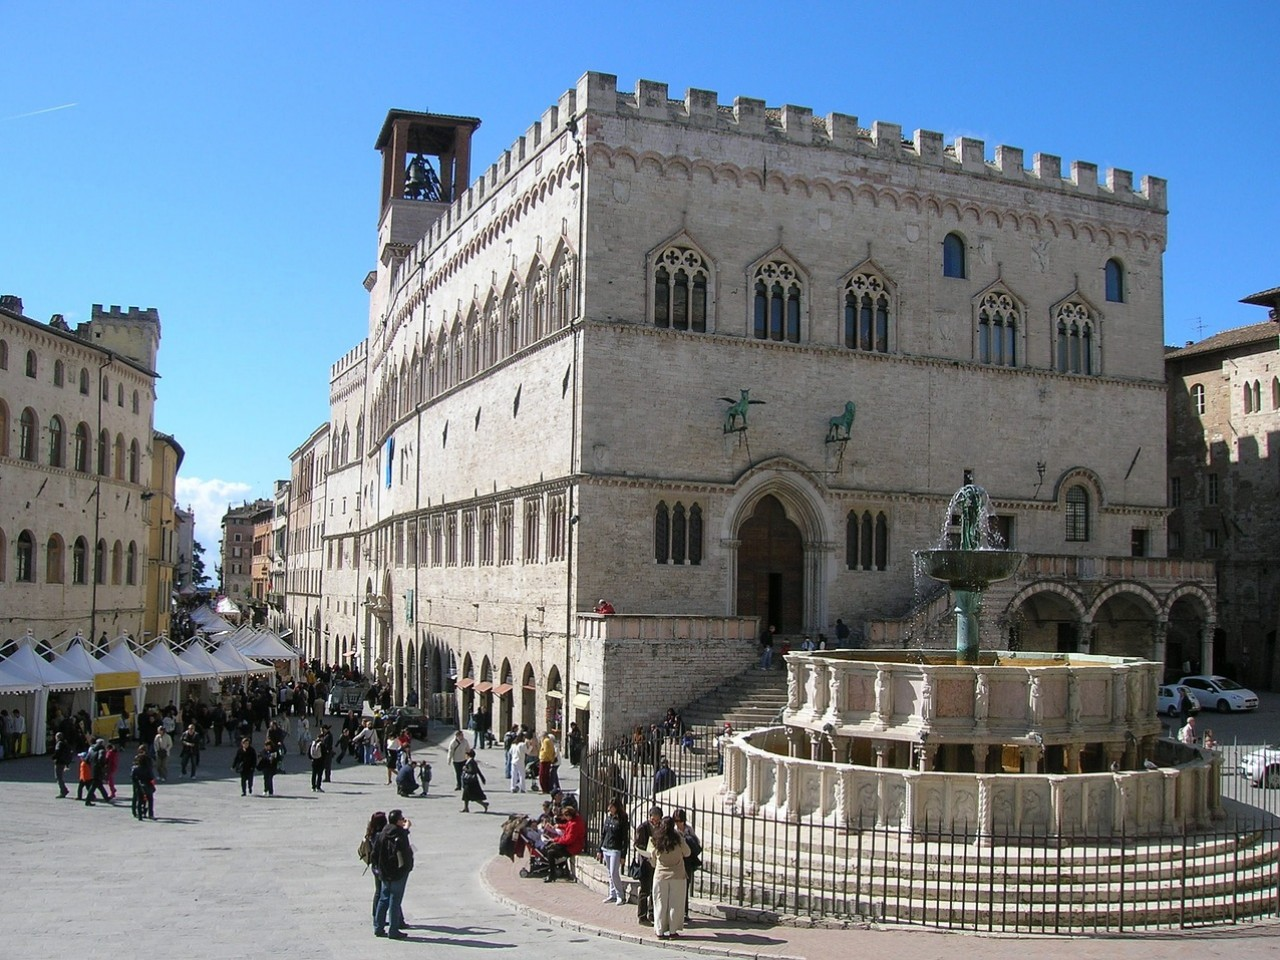 WEEK END IN PERUGIA